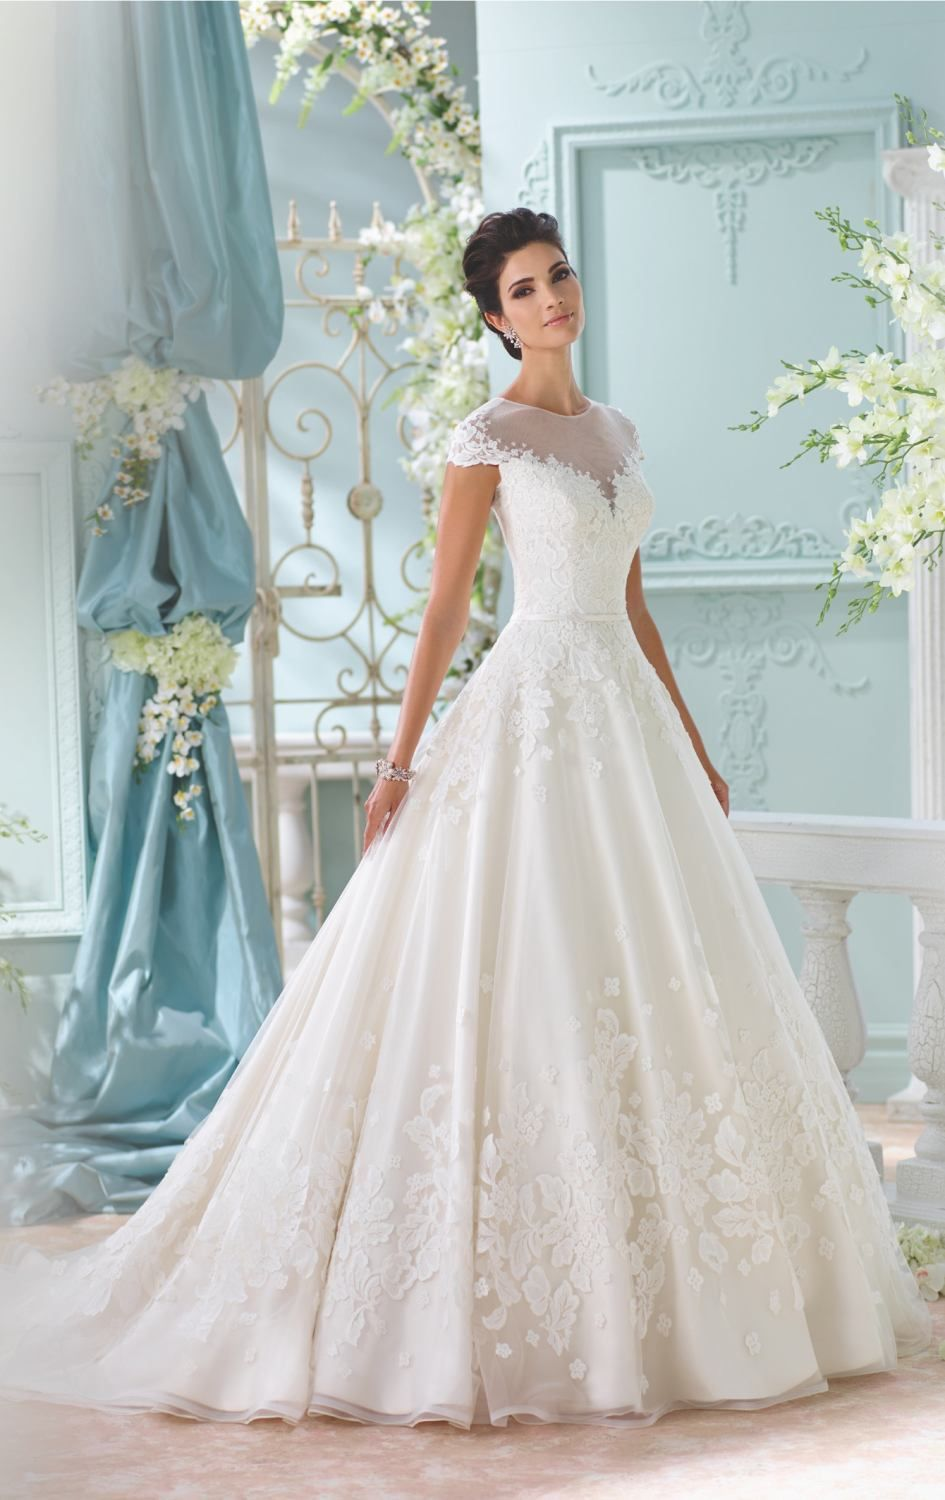 Beautiful Price Of Vera Wang Wedding Gowns Vignette - All Wedding ...